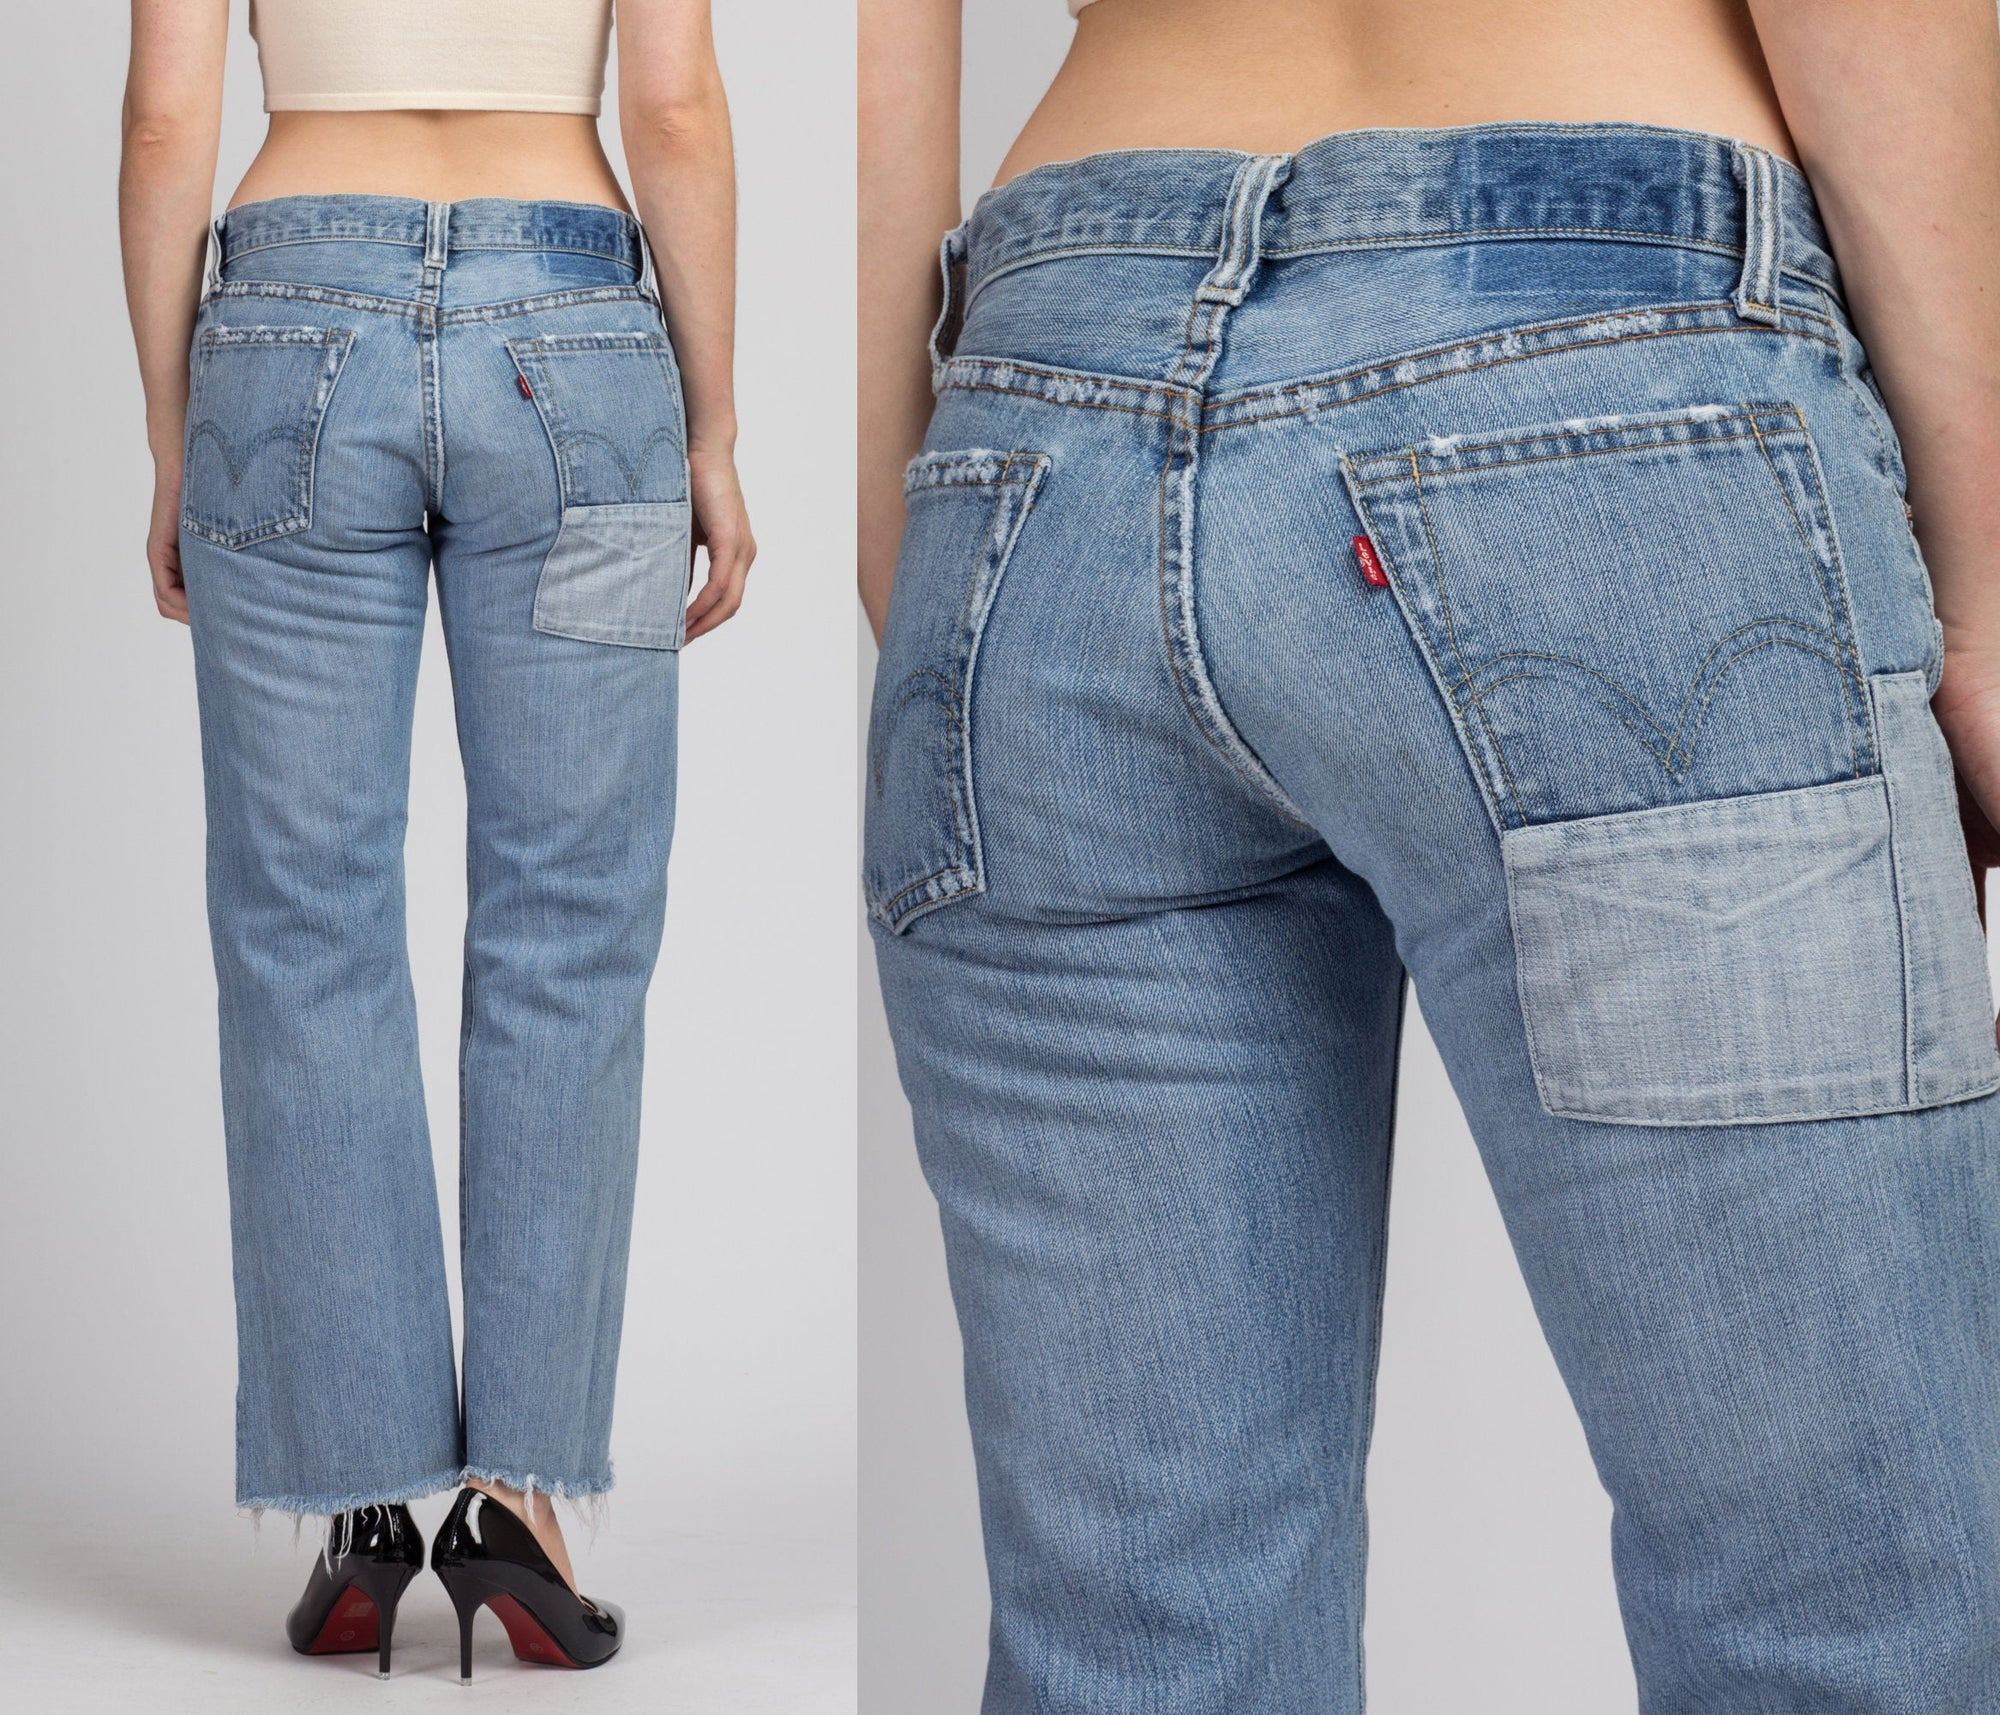 Vintage Levi's Patched Jeans - Extra Small to Petite Small